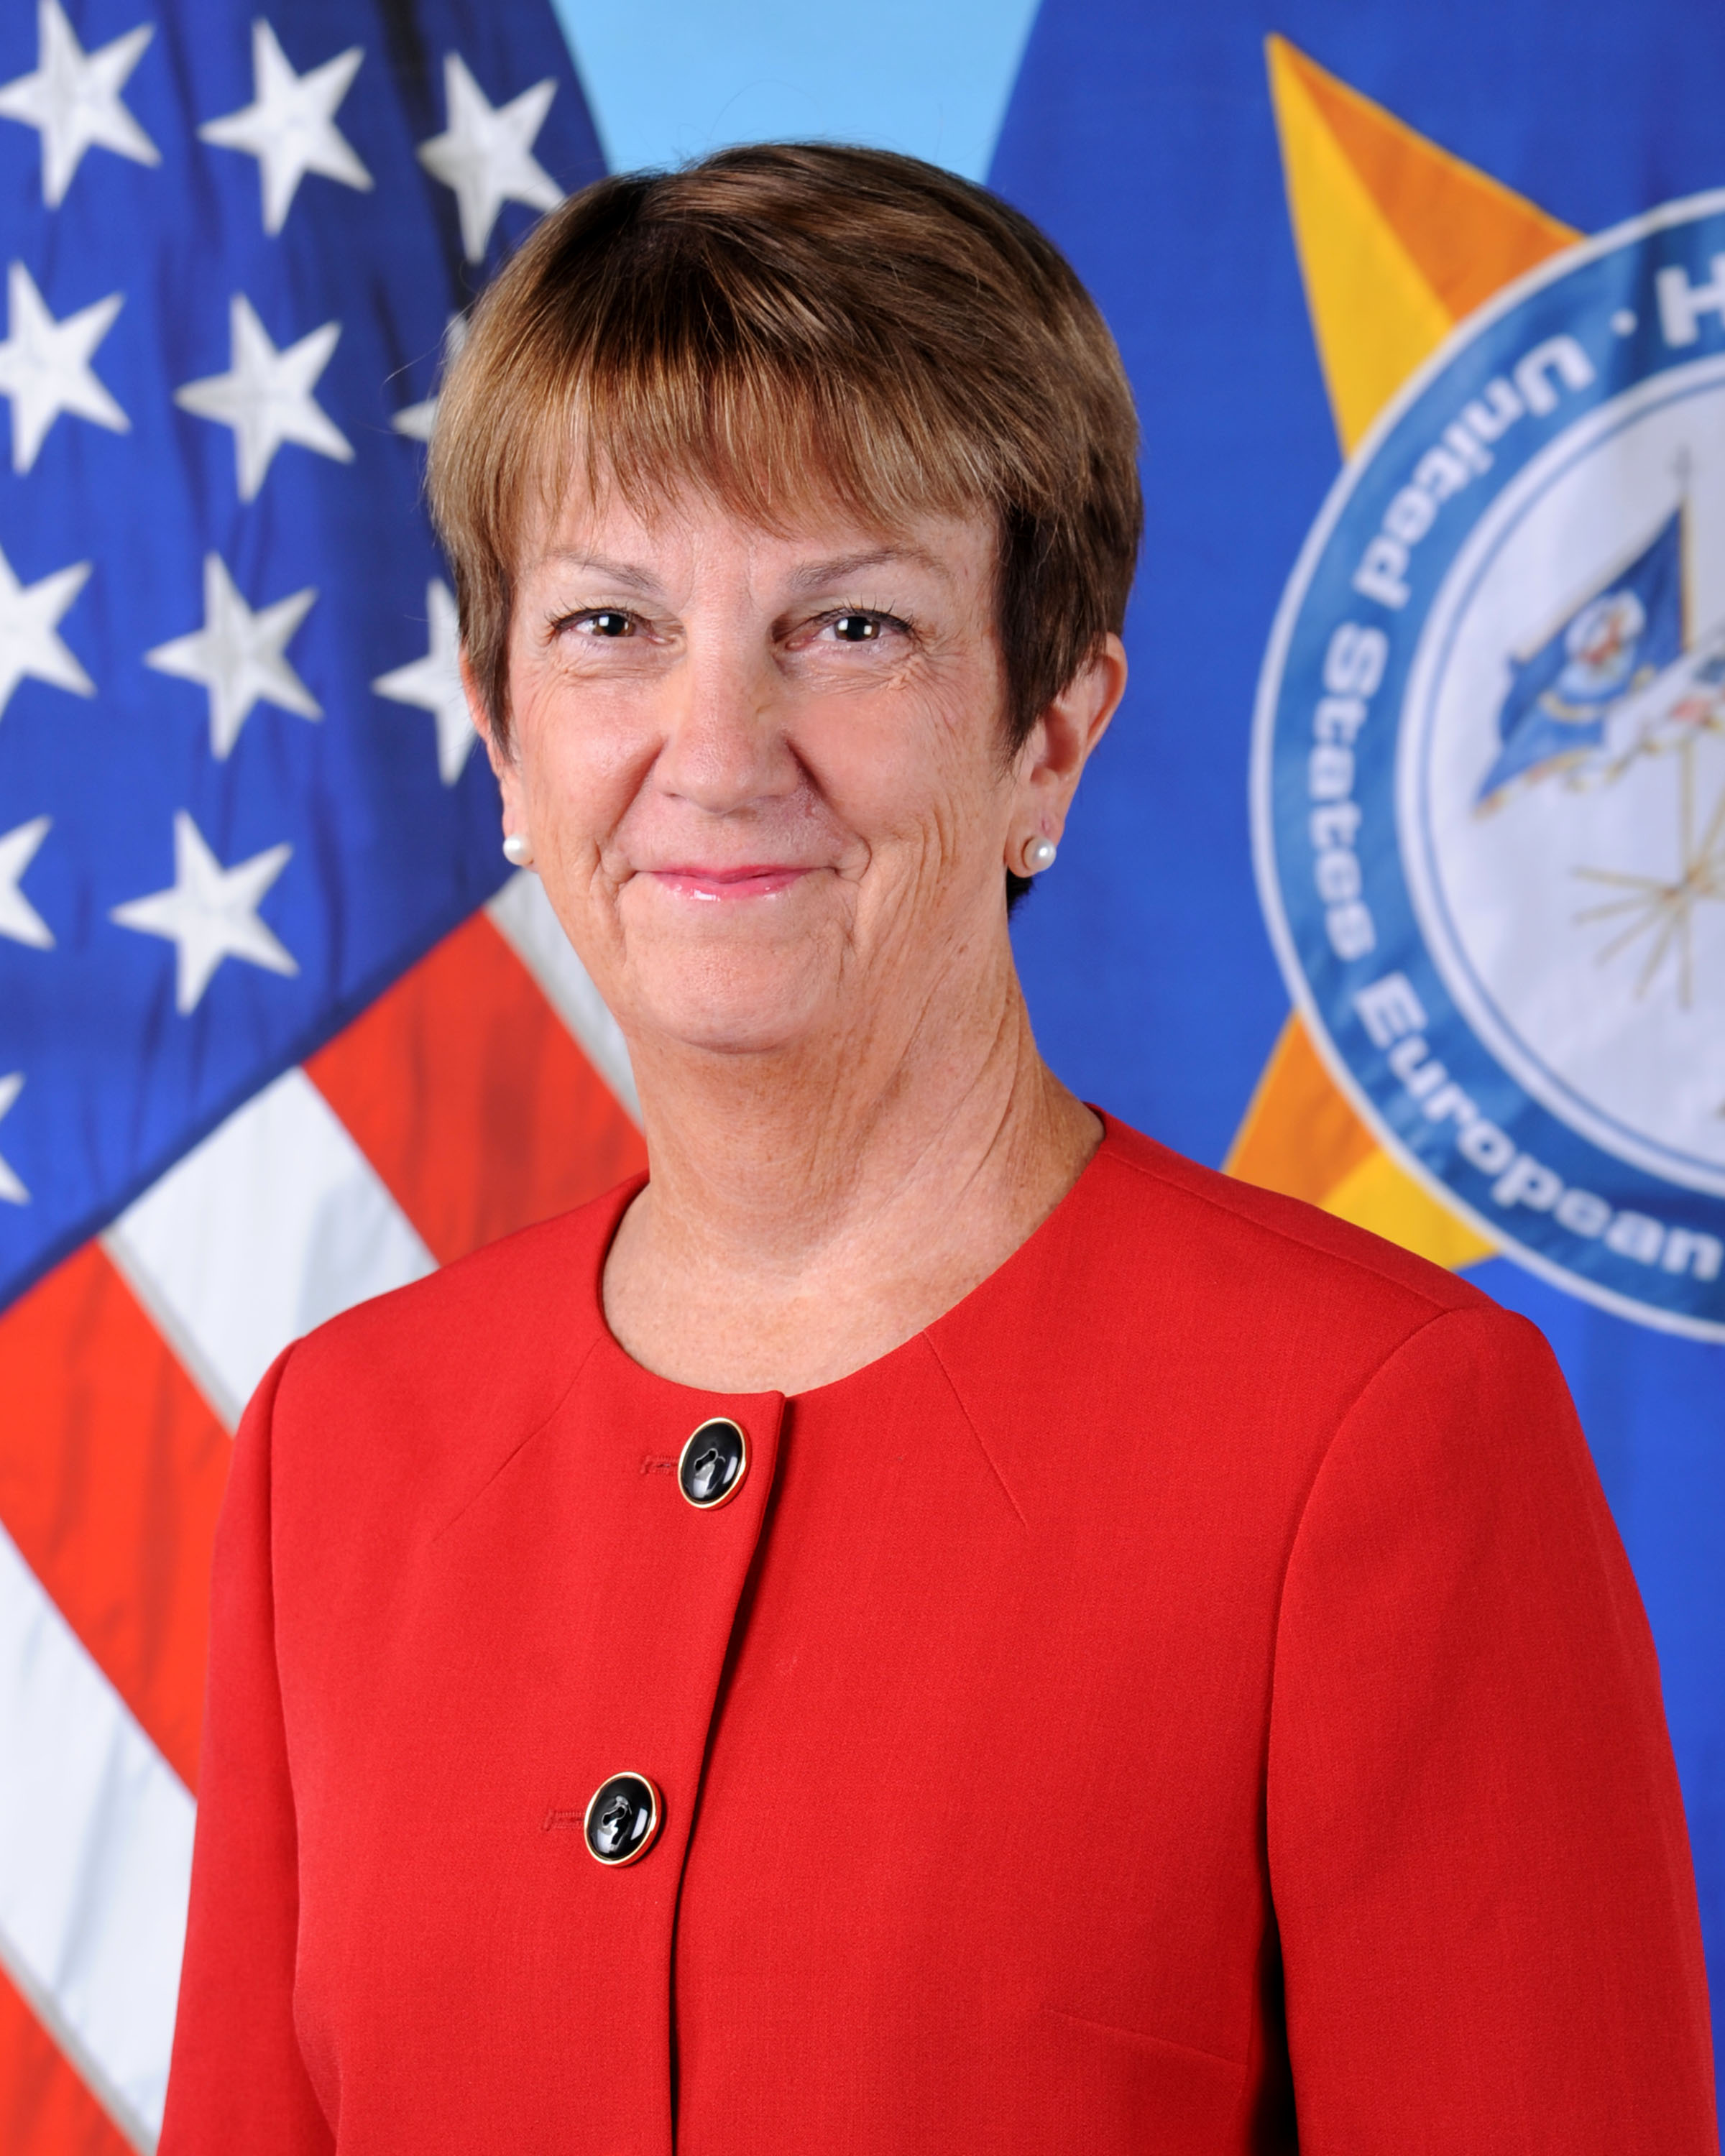 Civilian Deputy to the Commander and Foreign Policy Advisor, United States European Command